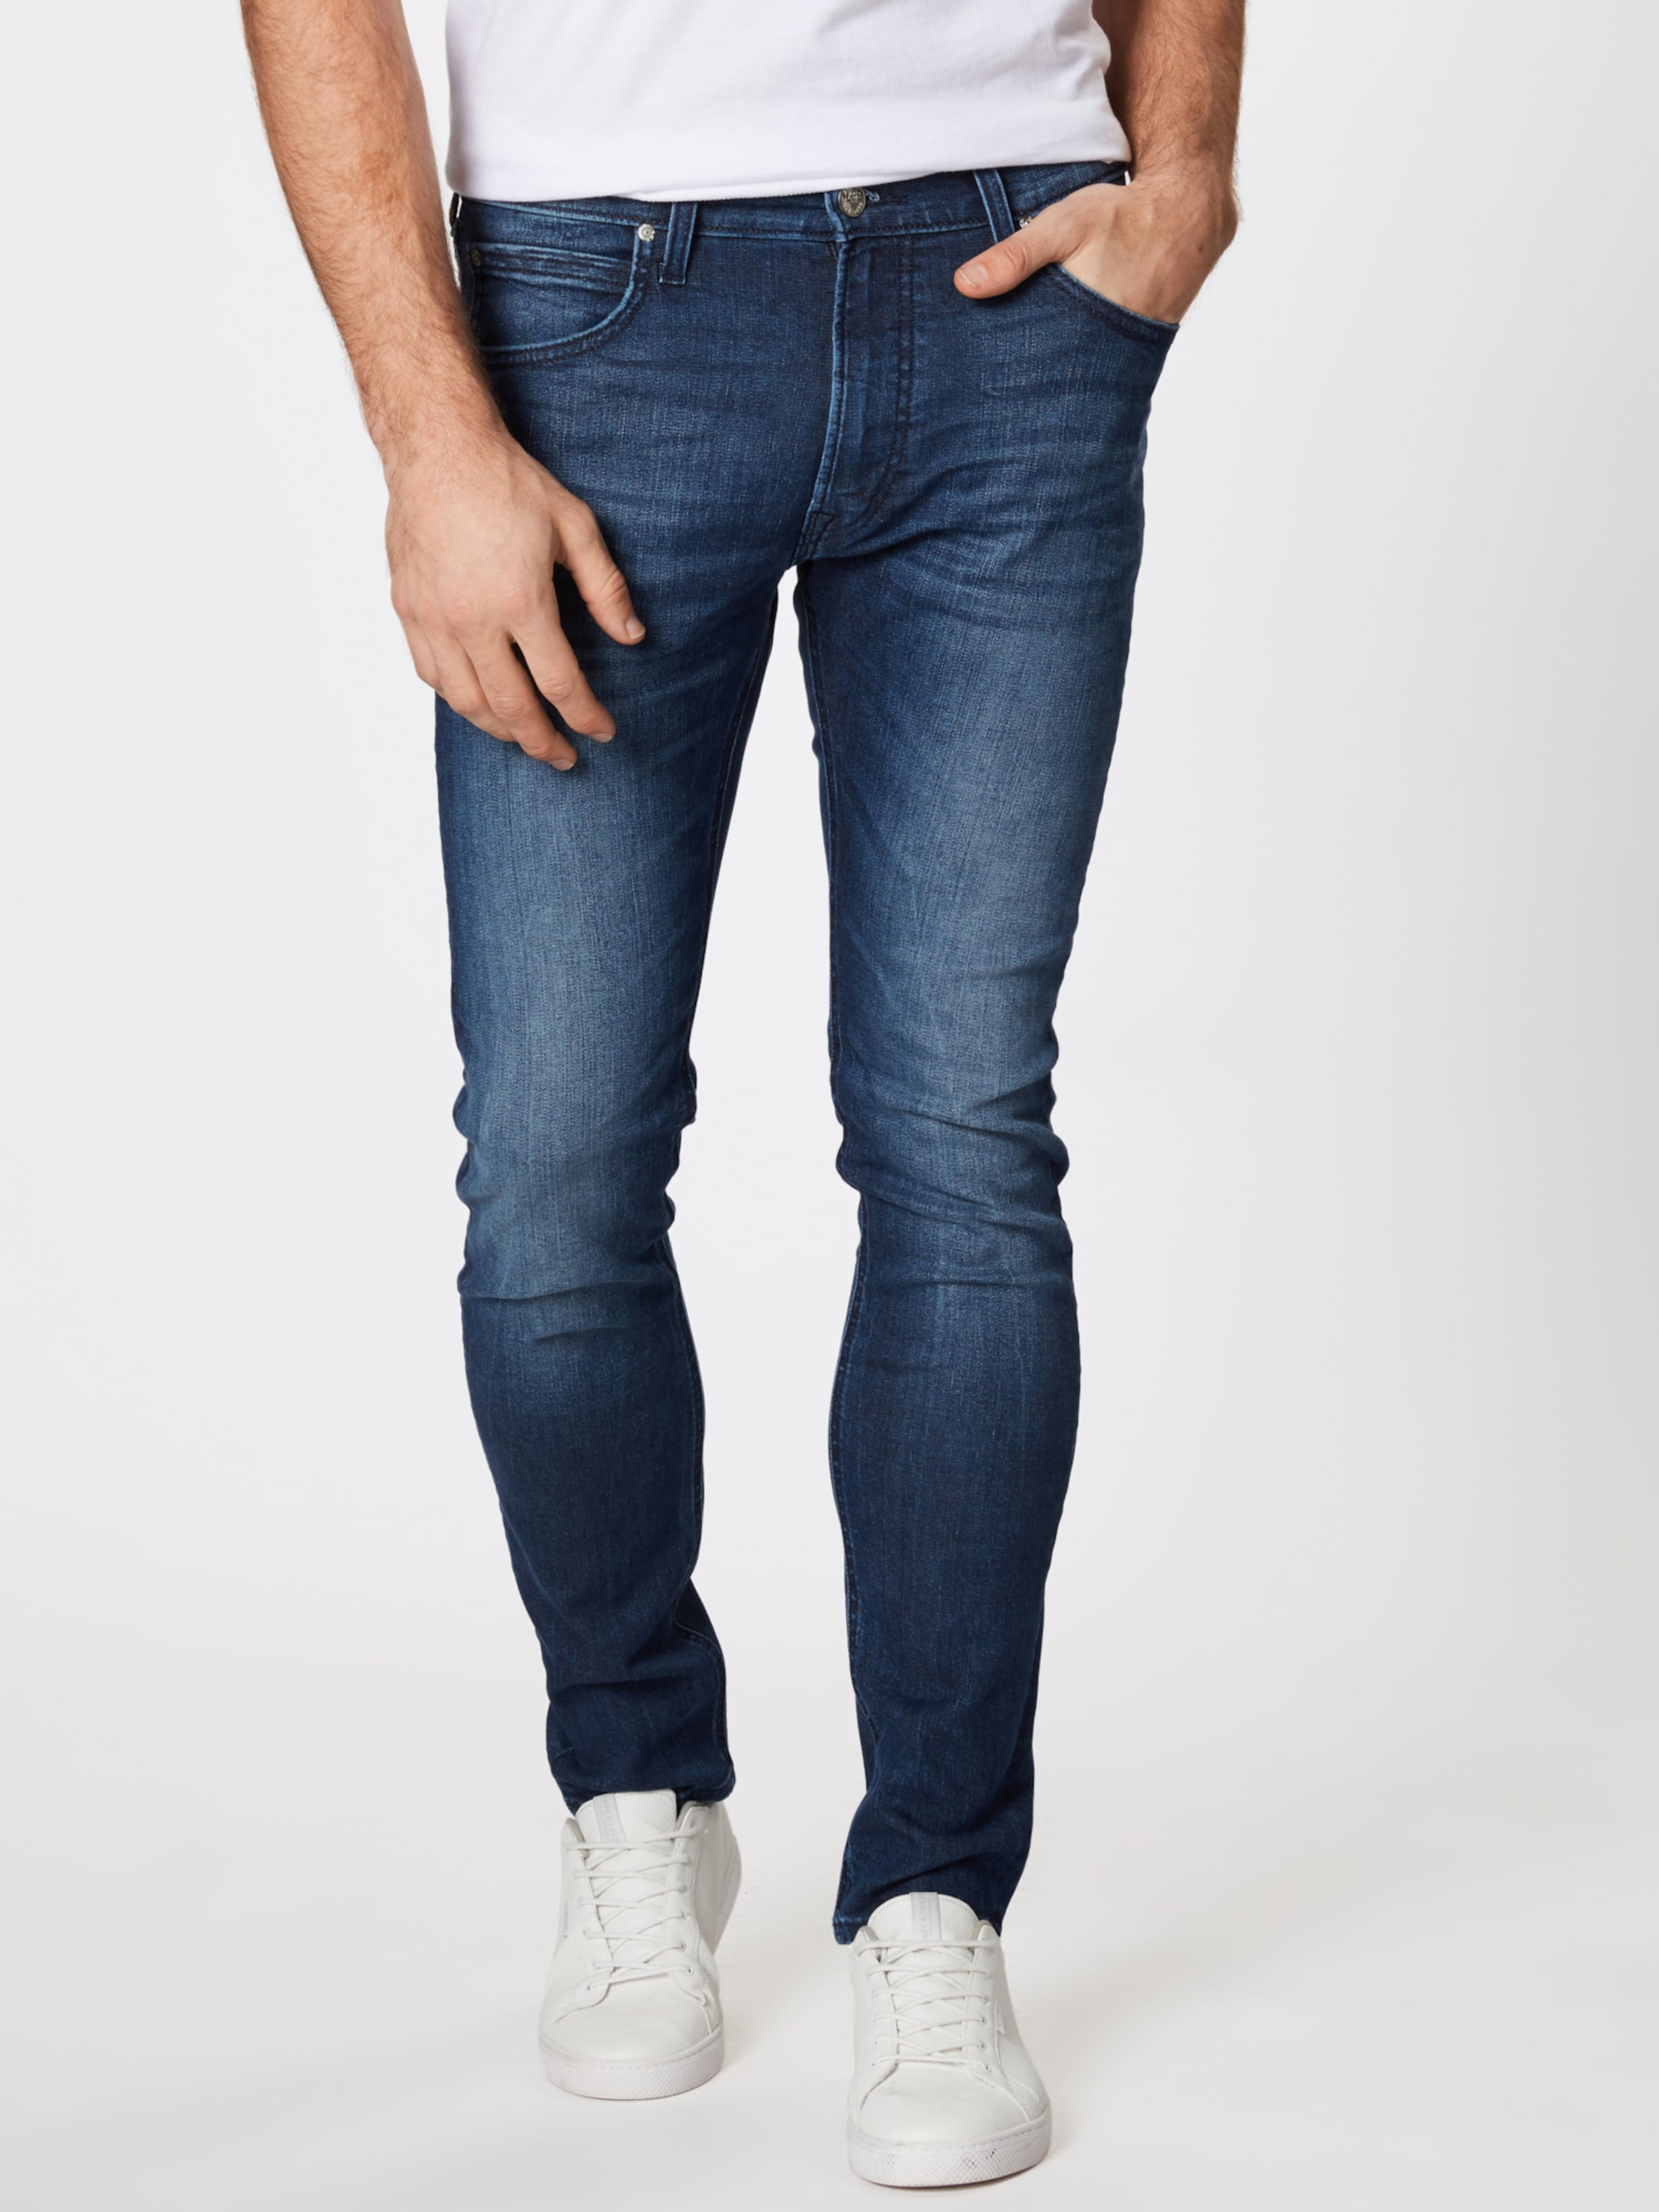 Jean Lee Denim En Bleu 'luke' I7fyvmYb6g